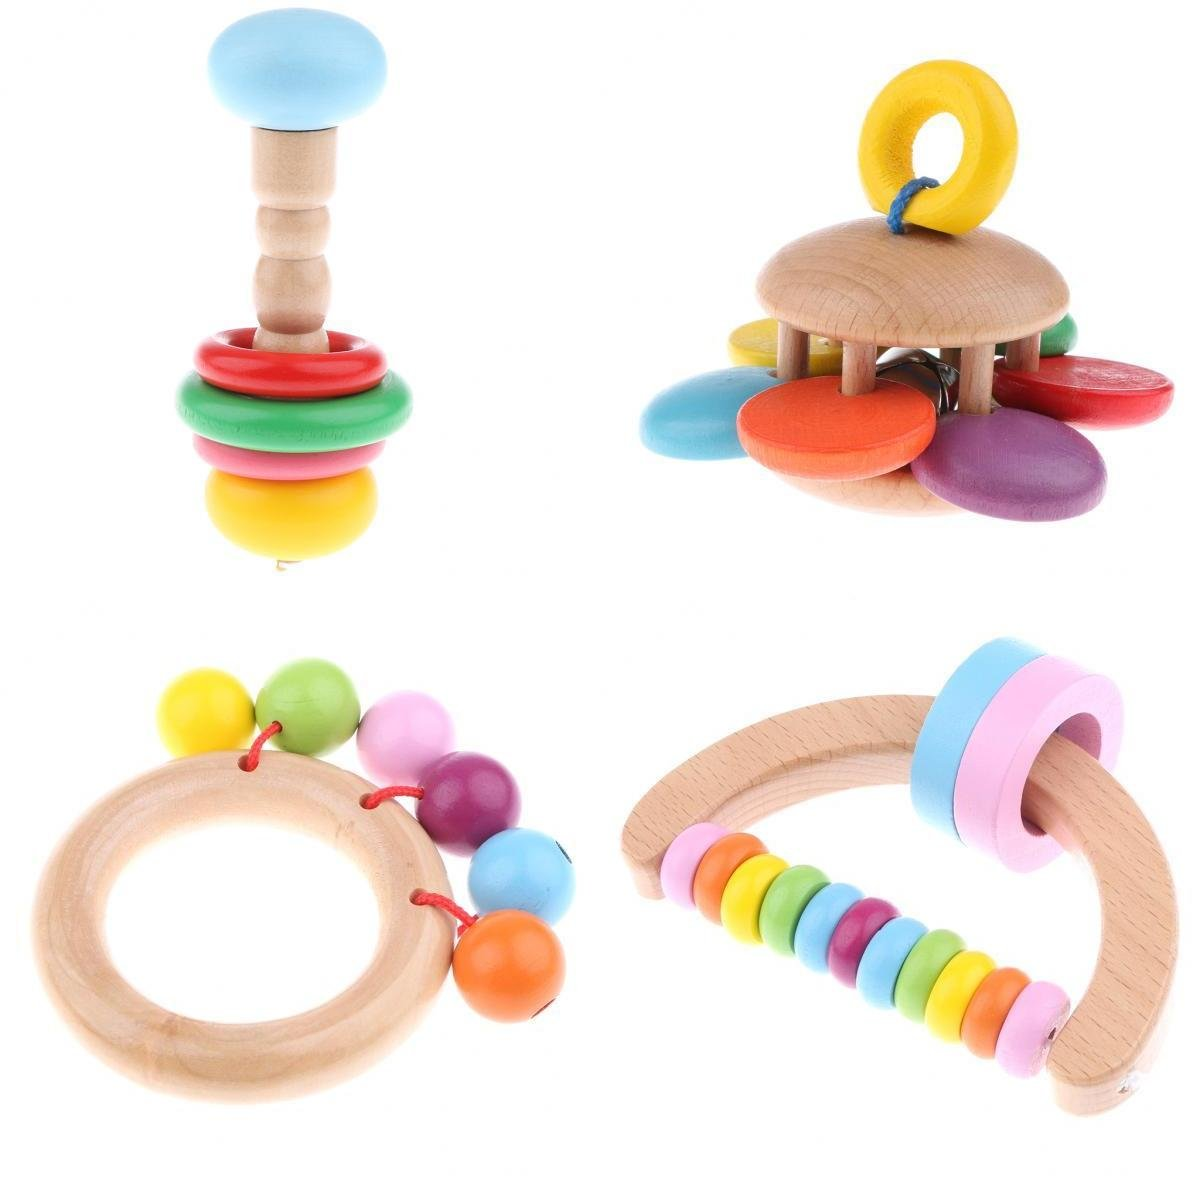 Homyl Pack Of 4 Wood Montessori Styled Baby Rattles Grasping Toy for Baby Toddlers